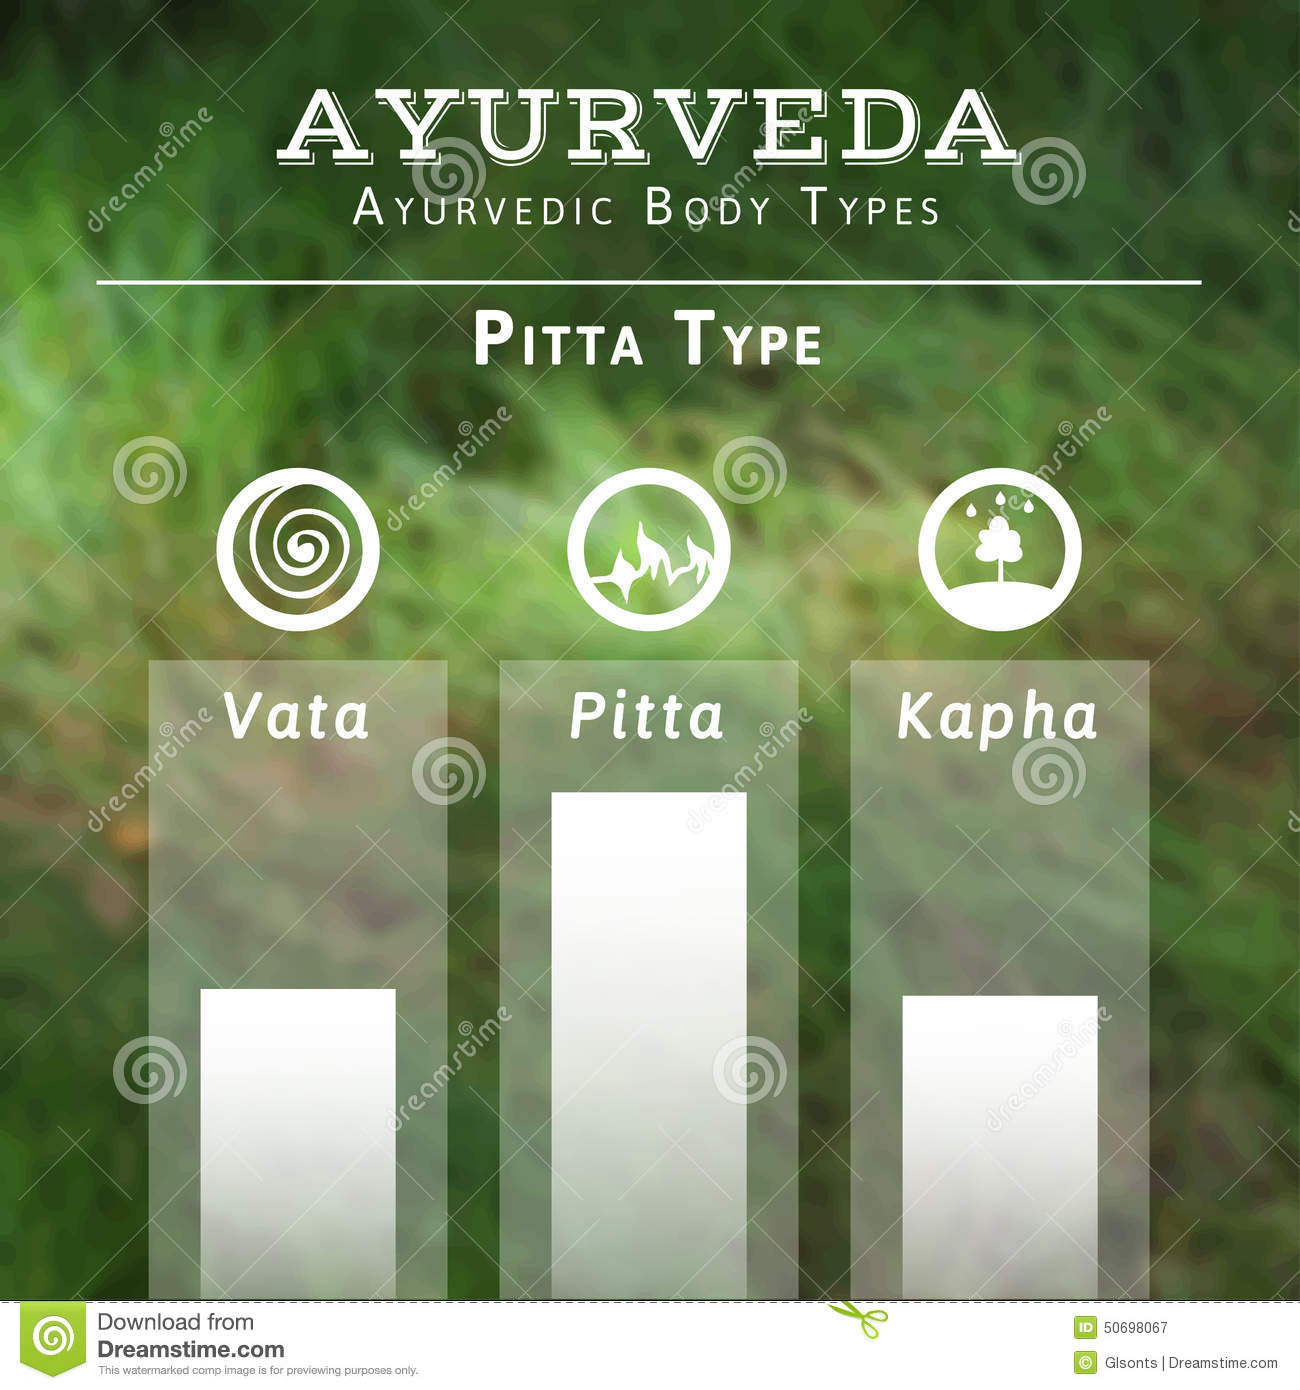 Business Opportunities for Herbal, Natural & Ayurvedic Products Distributors